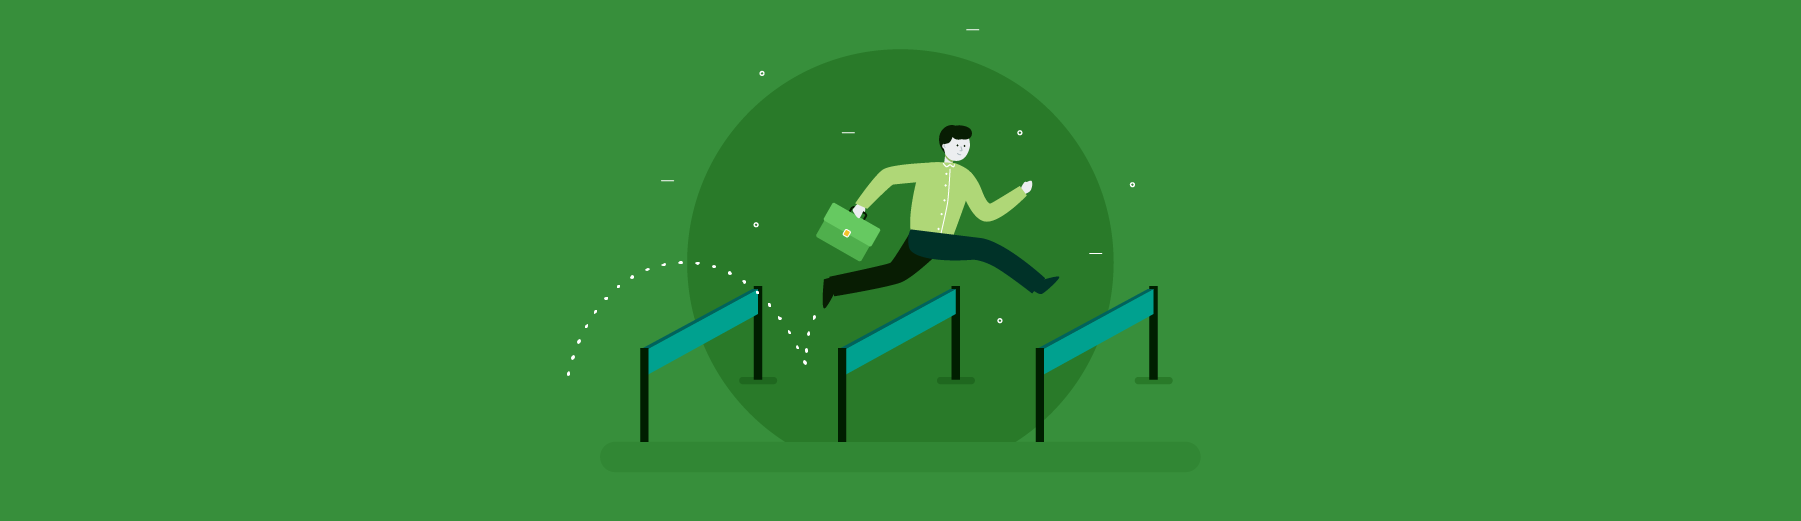 14 marketing challenges, and how to overcome them